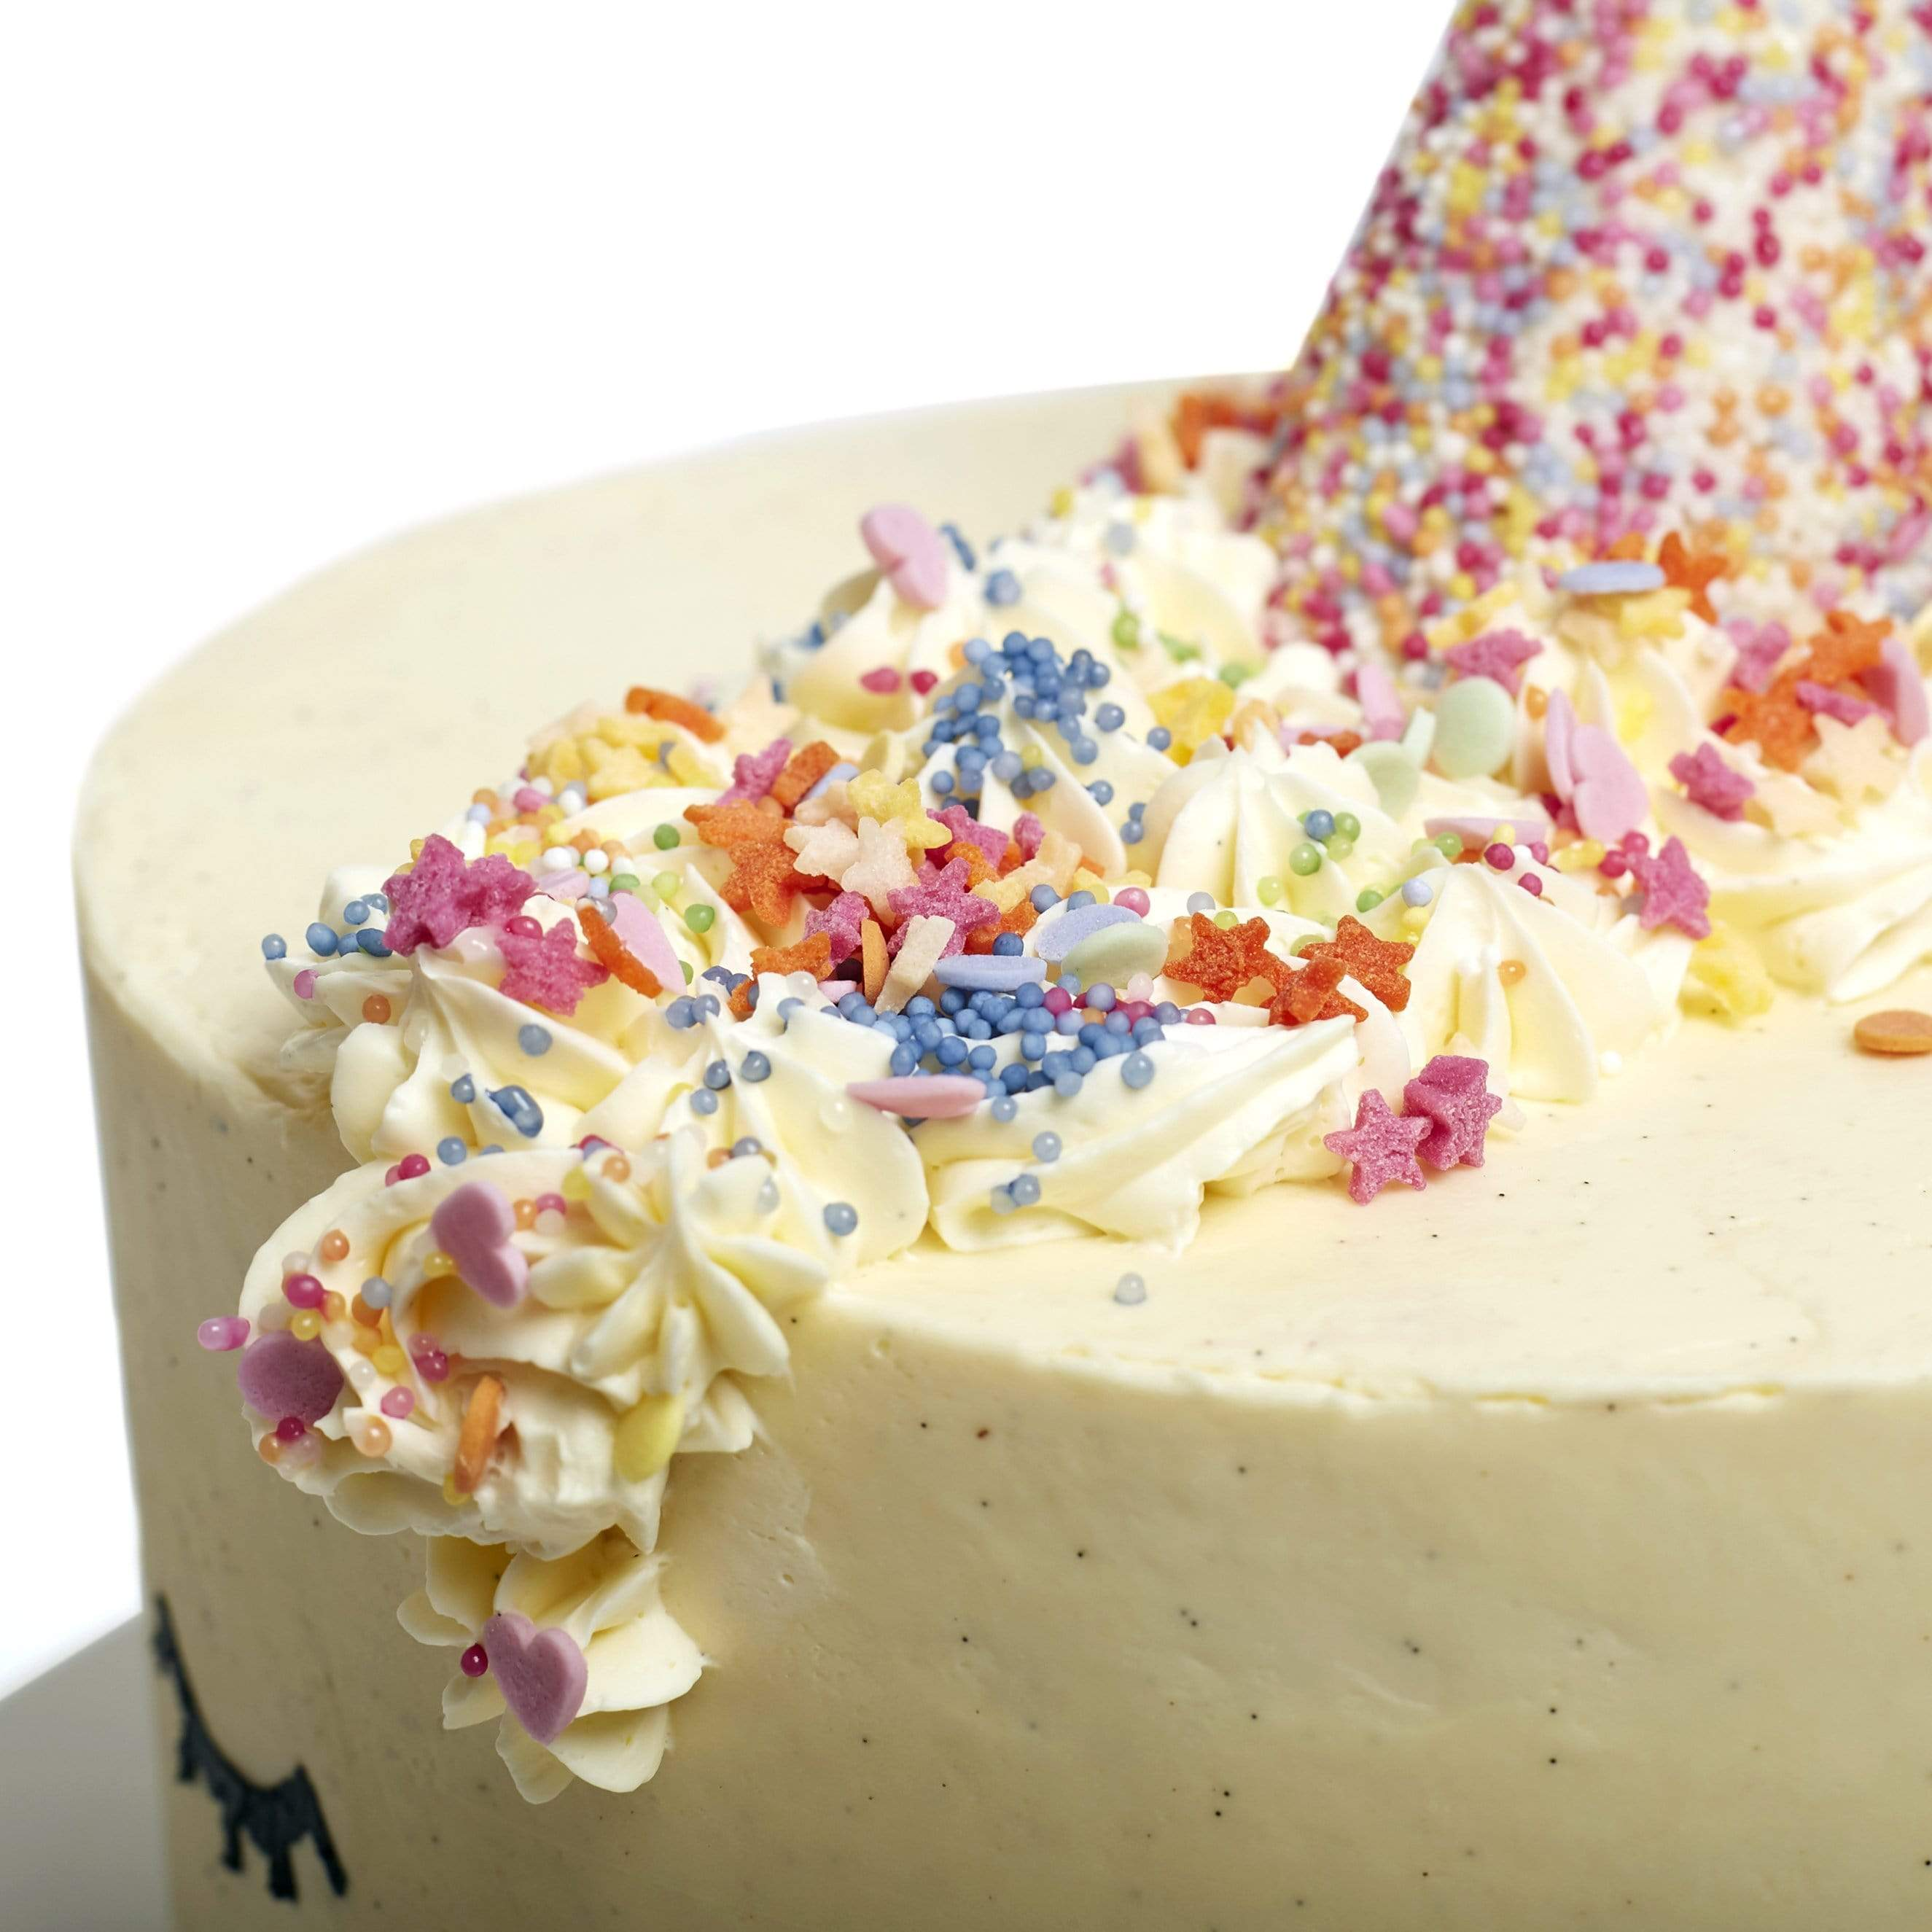 Swell Unicorn Birthday Cake Available In A Range Of Delicious Flavours Funny Birthday Cards Online Eattedamsfinfo